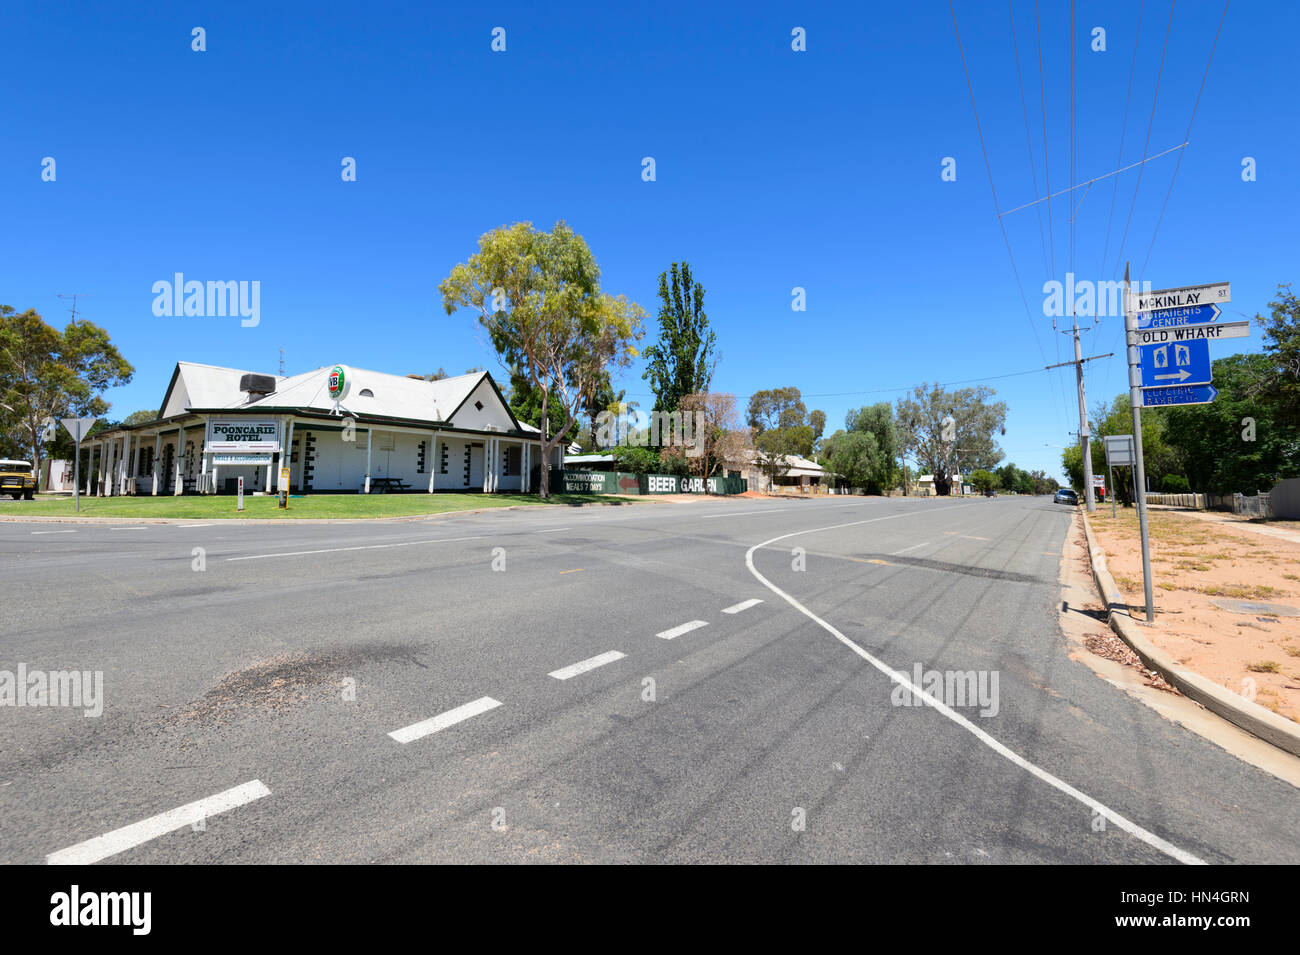 Street Scene of the remote town of Pooncarie, New South Wales, Australia - Stock Image